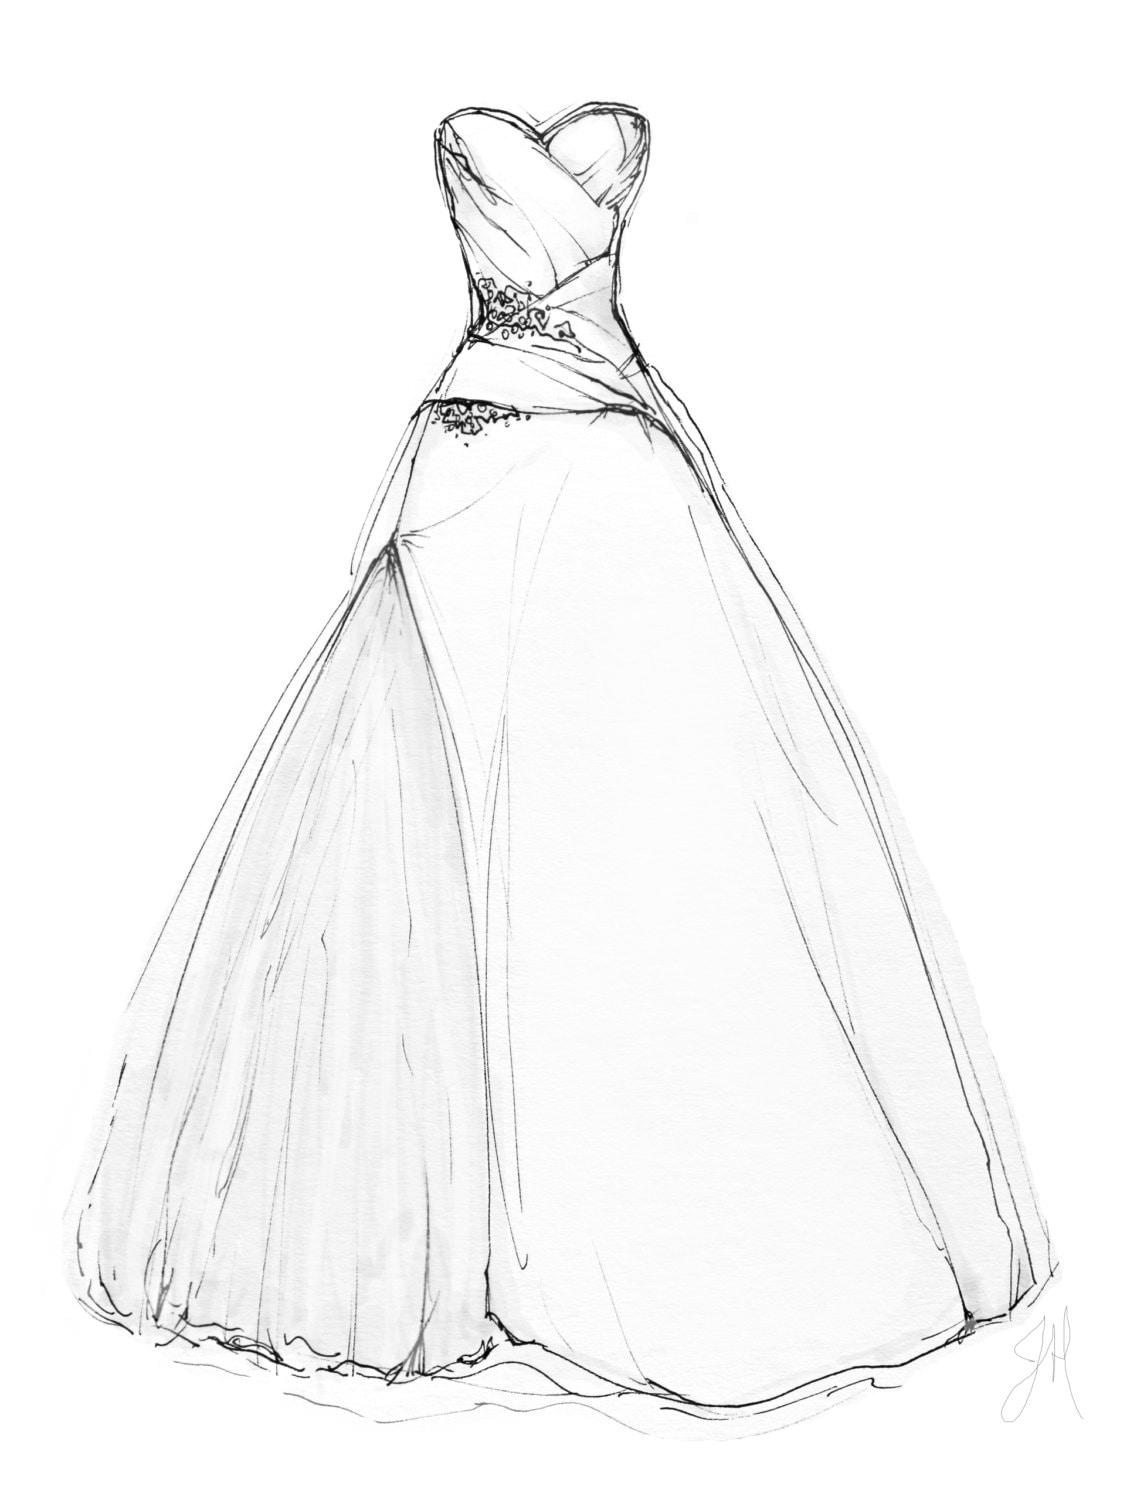 Animated Girls With Short Dresses Coloring Pages